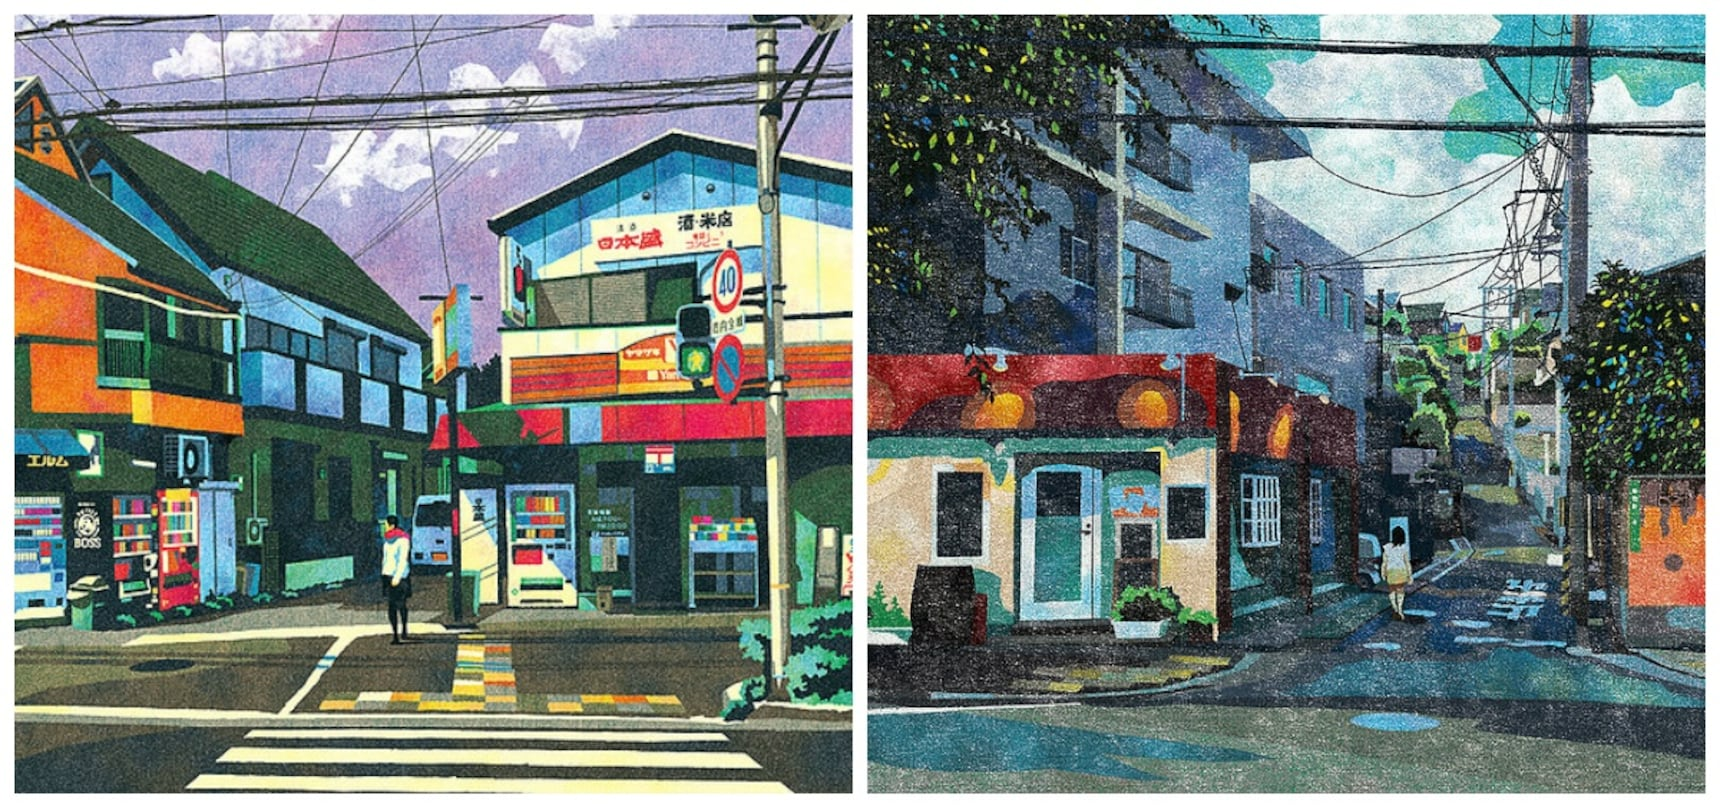 Japanese Illustrator Brings Streets to Life